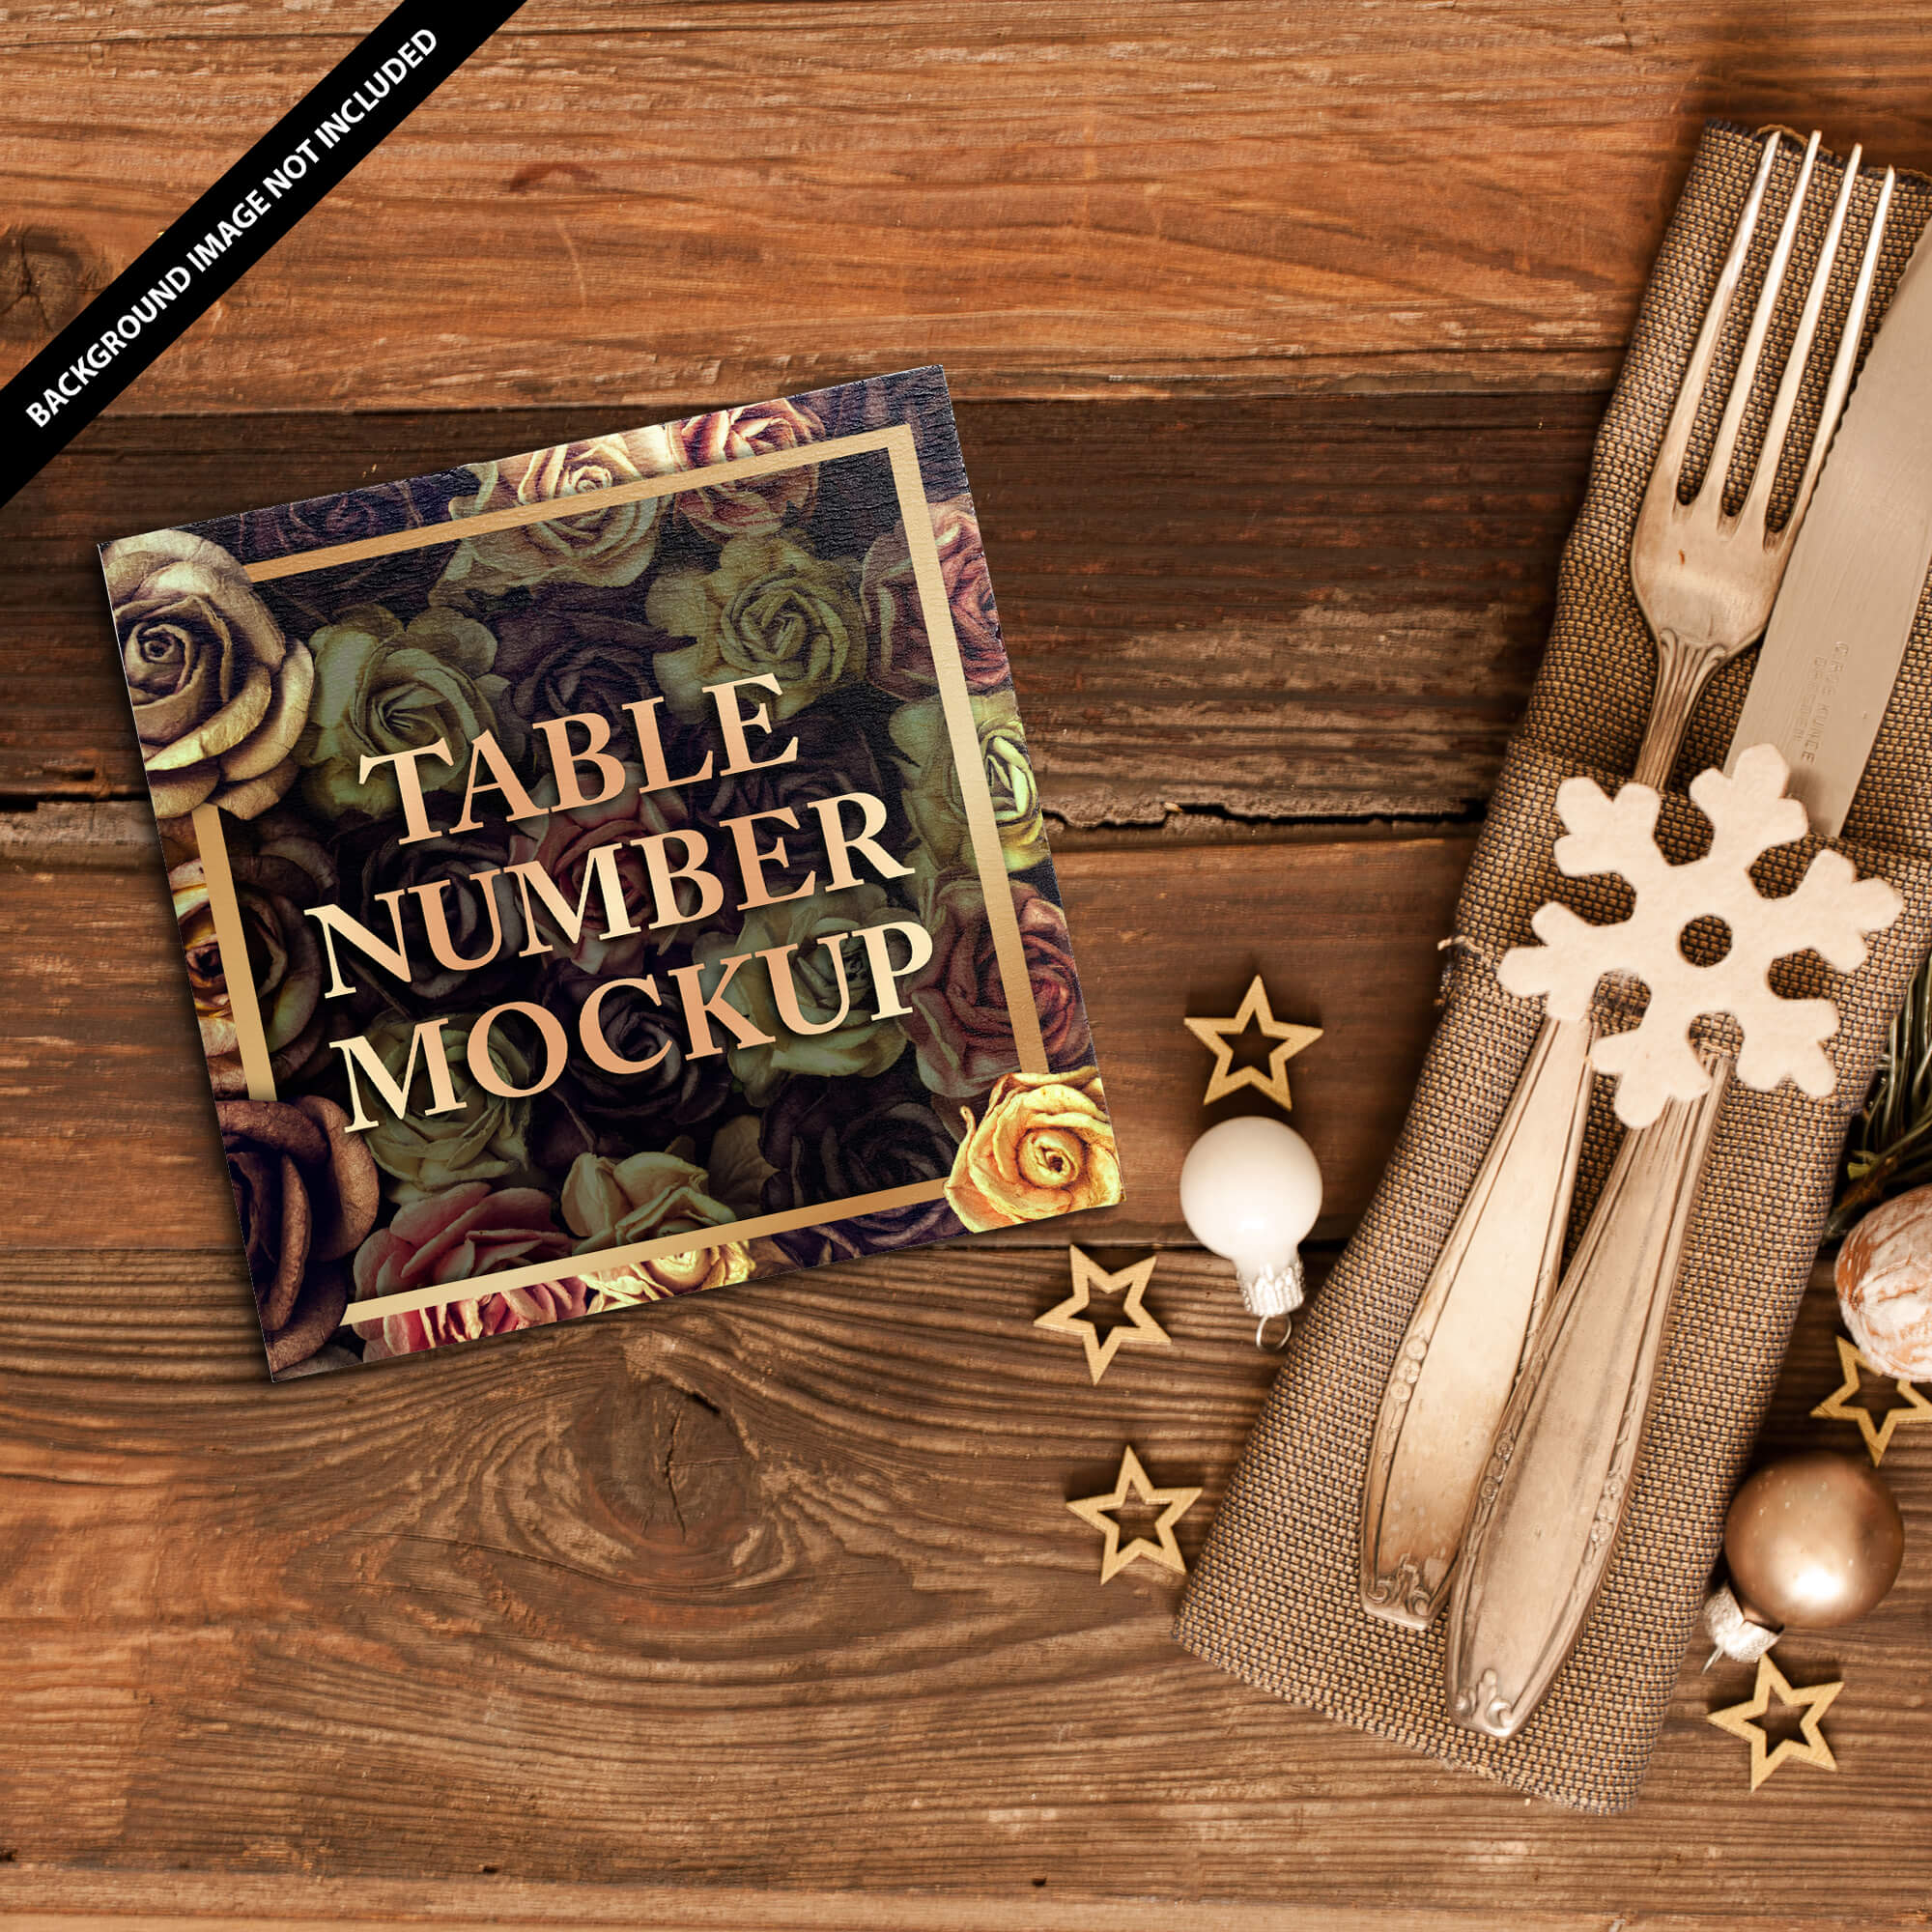 Free Table Number Mockup PSD Template